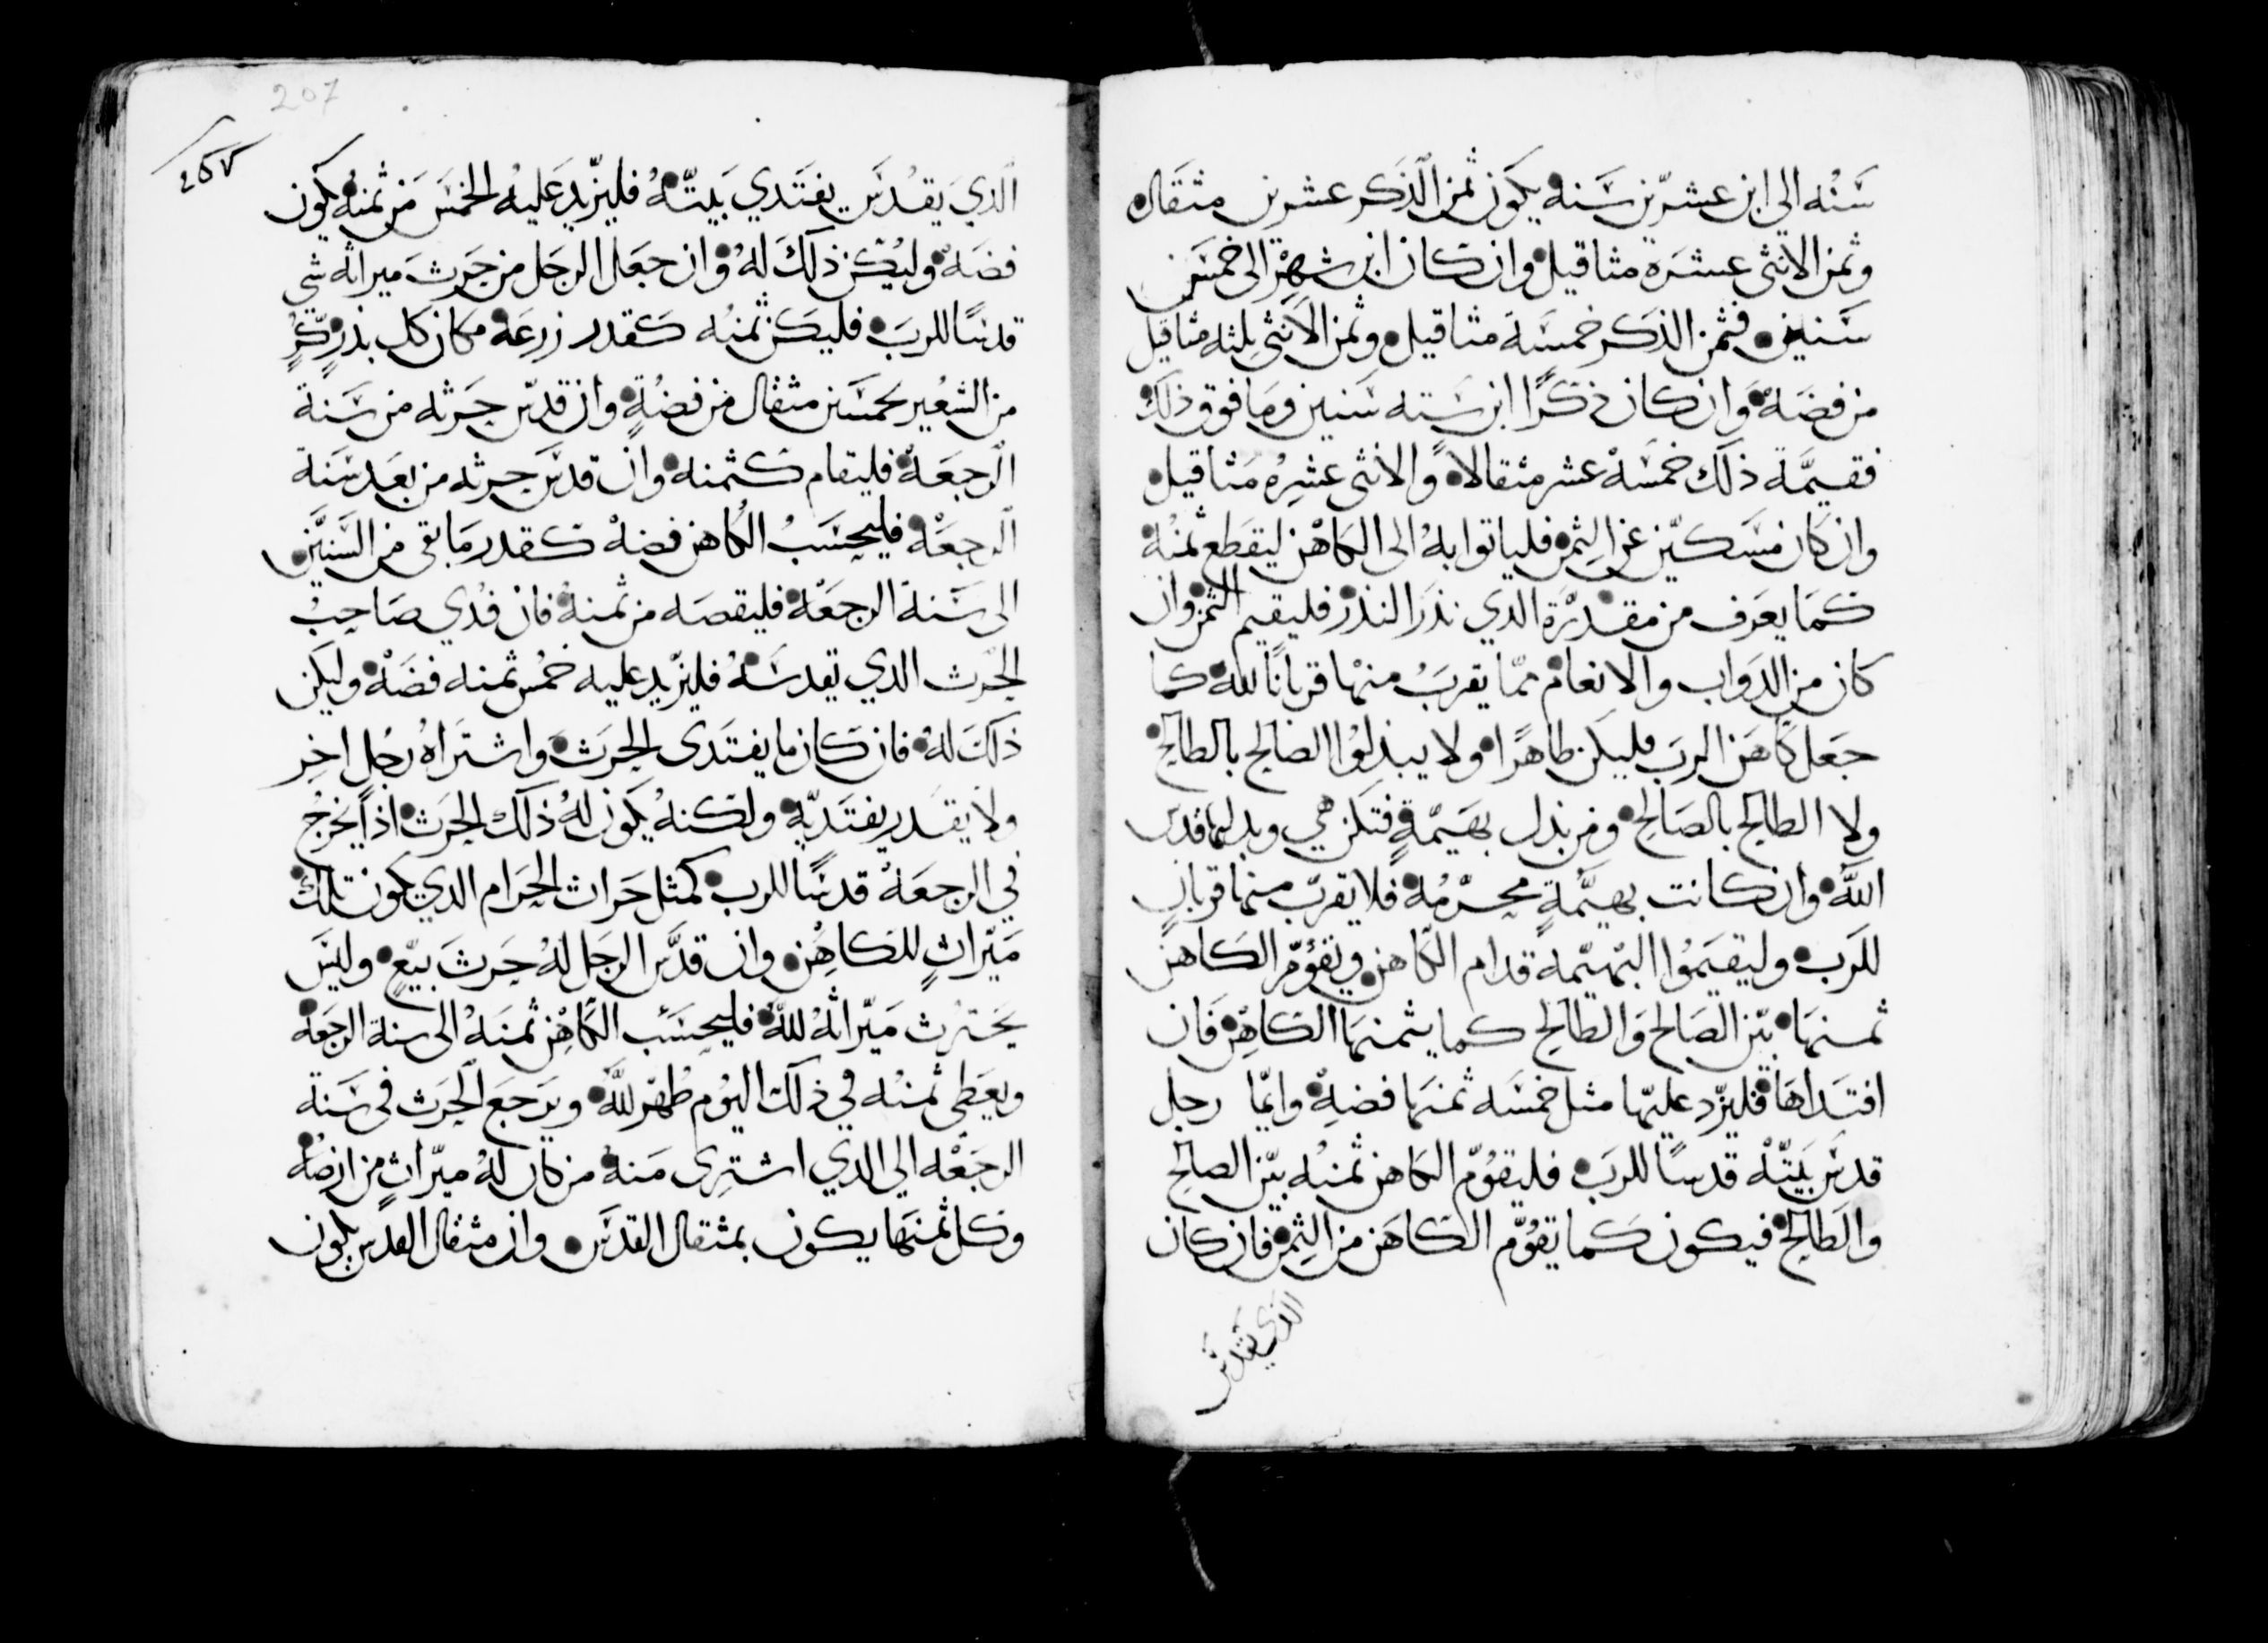 Manuscript Mixed Material Available Online Arabic Manuscripts 3